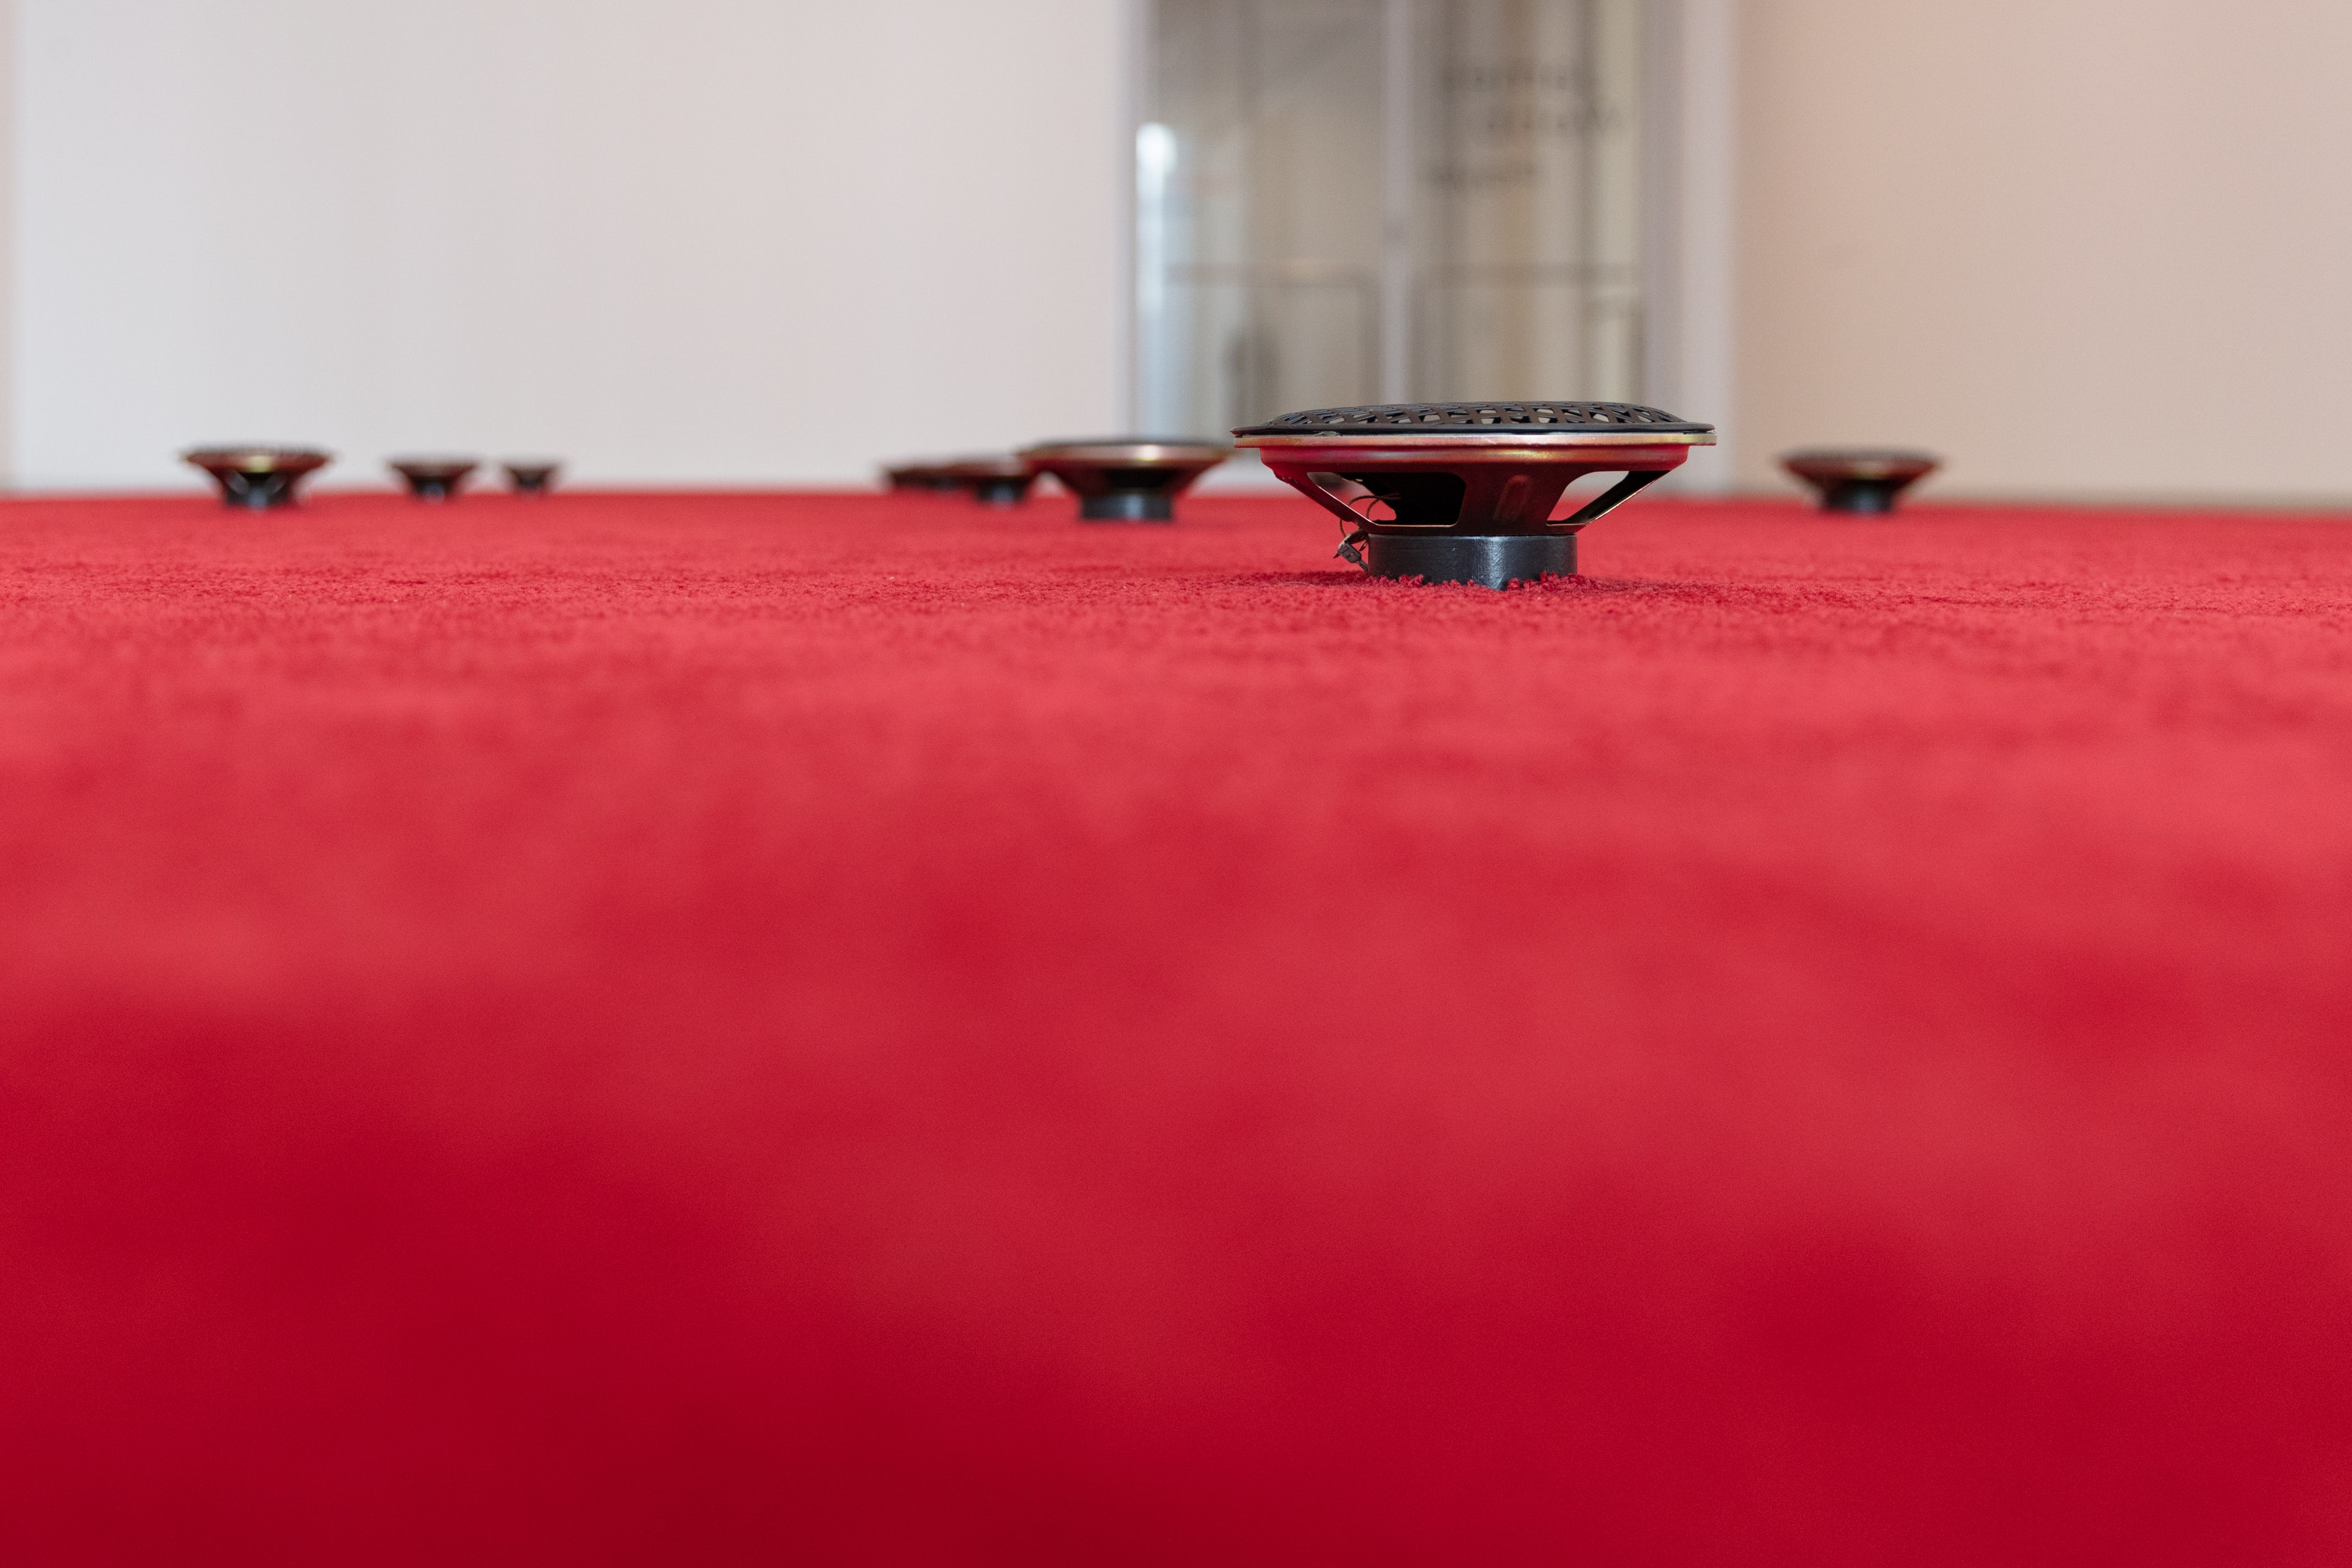 A close up photo of small black speakers on a red carpet.